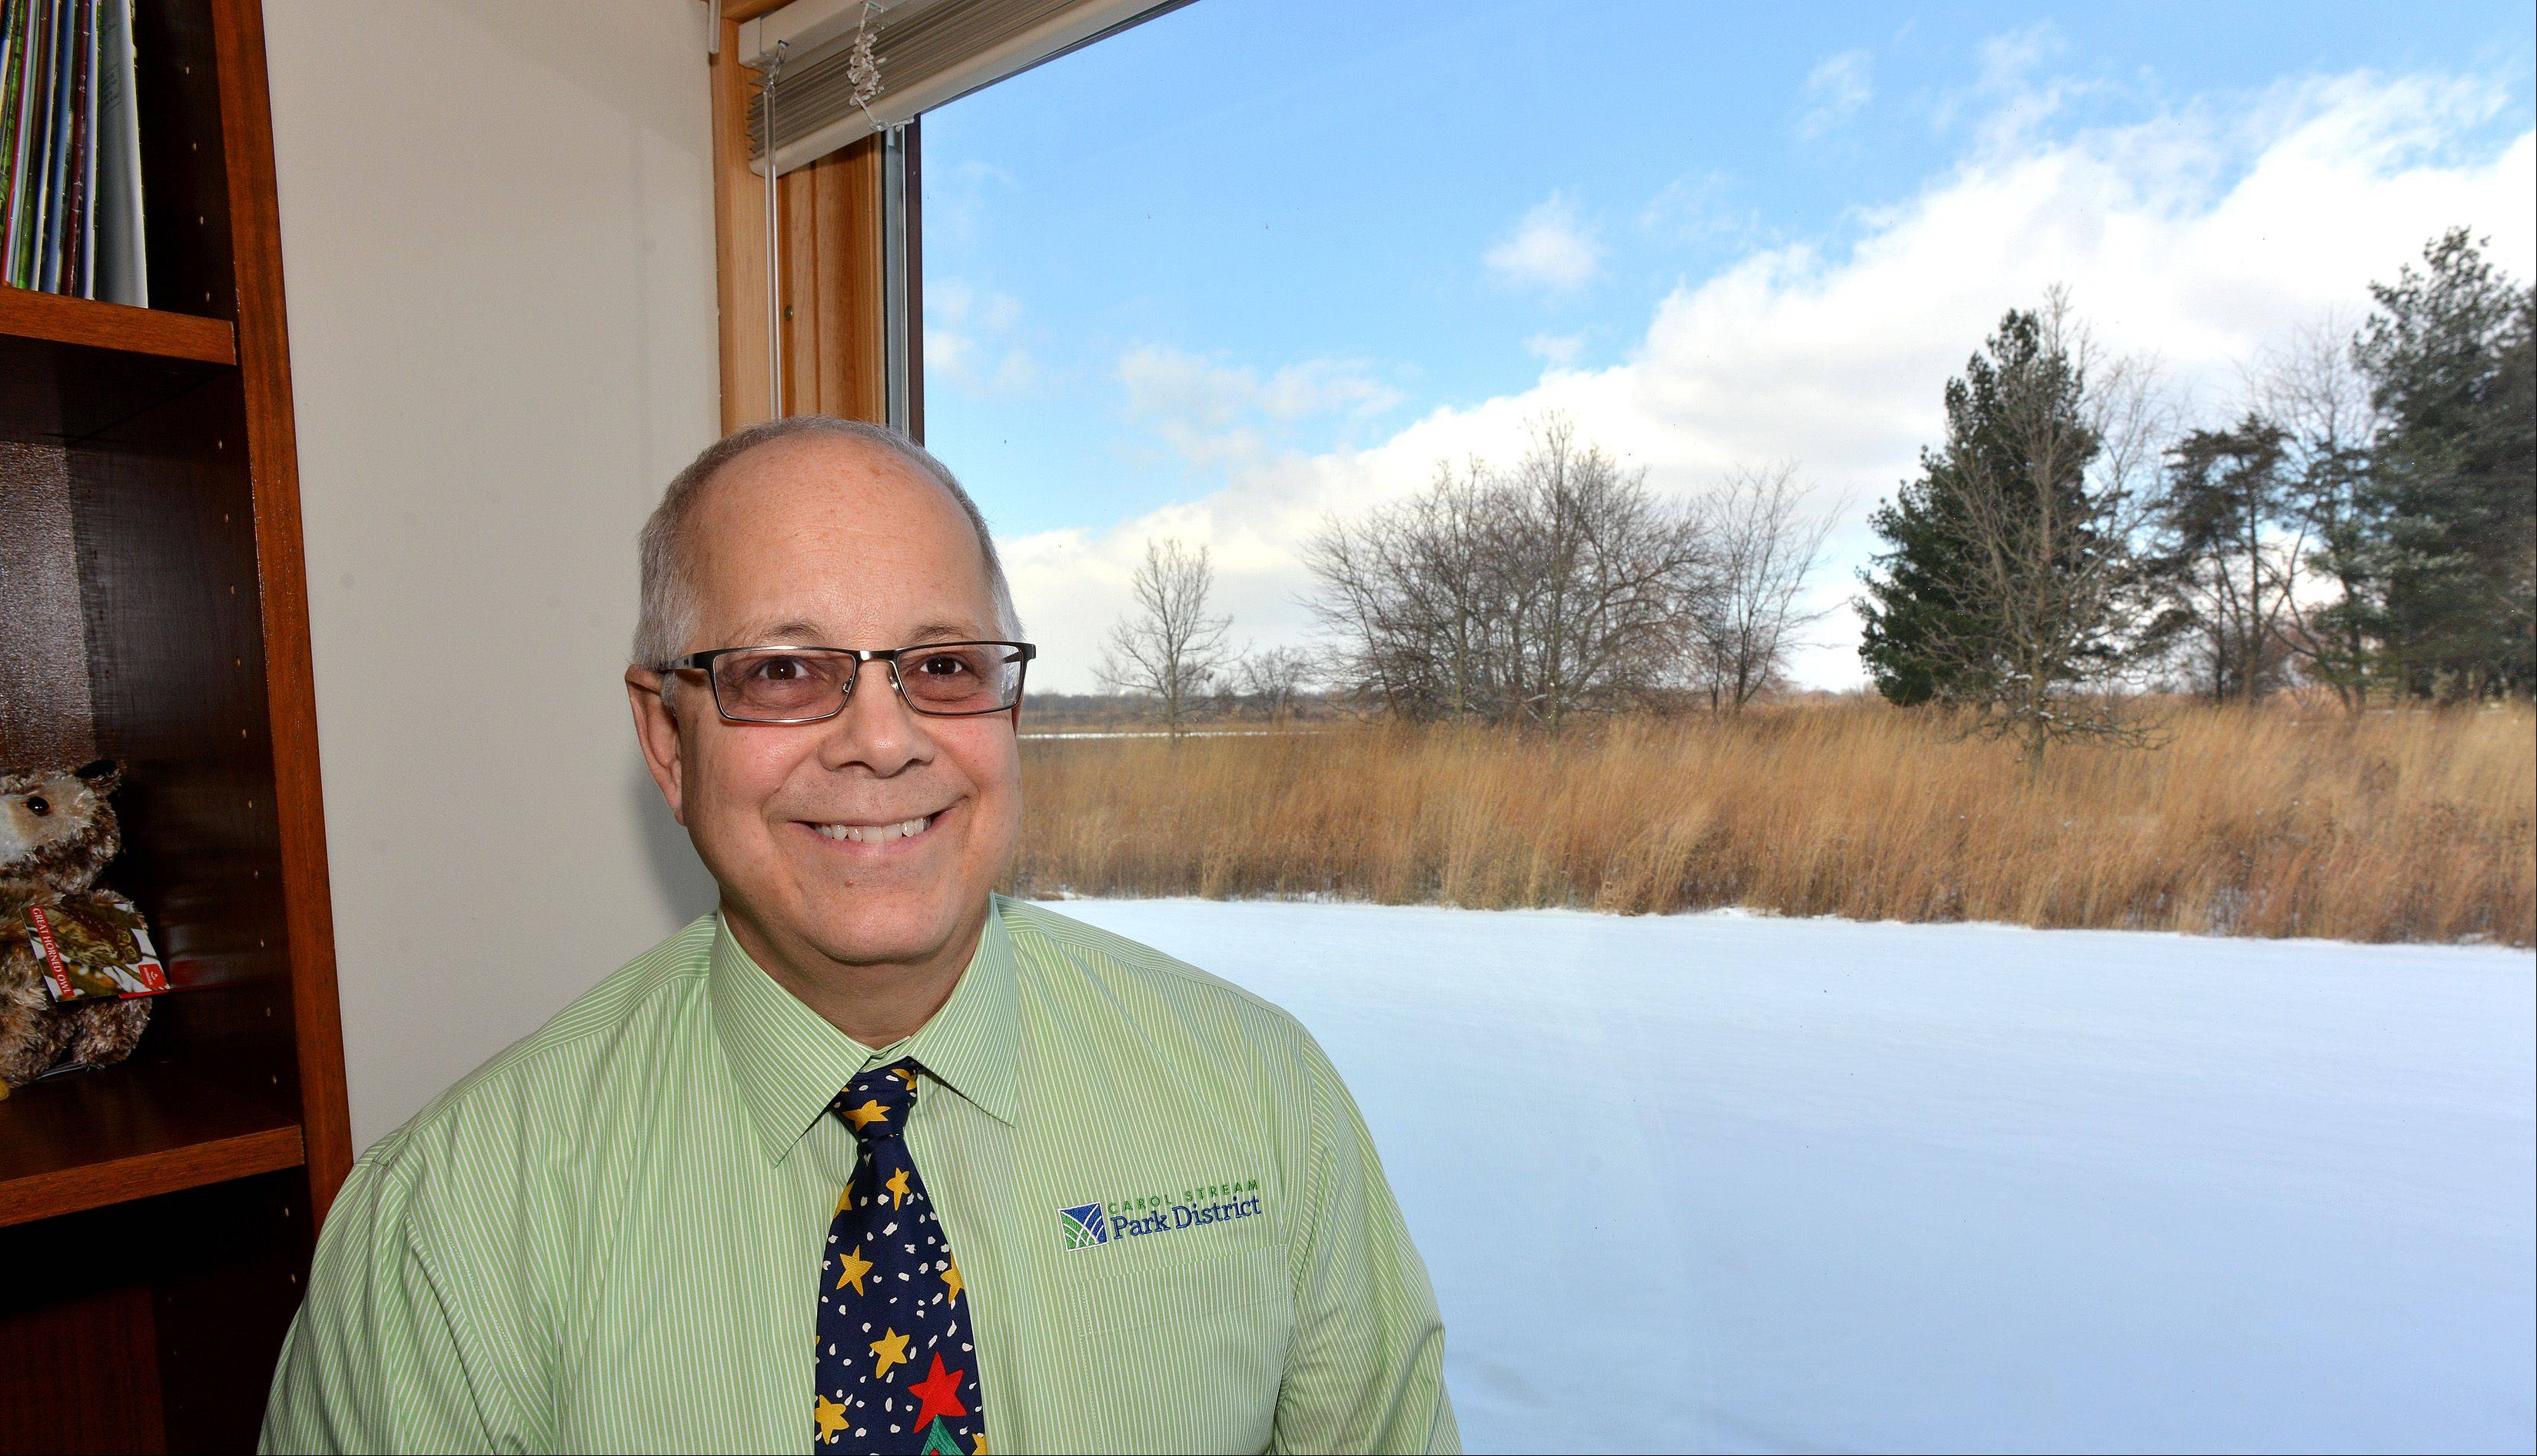 Arnie Biondo has been named executive director of the DuPage County Forest Preserve District. He will assume his new duties in January.